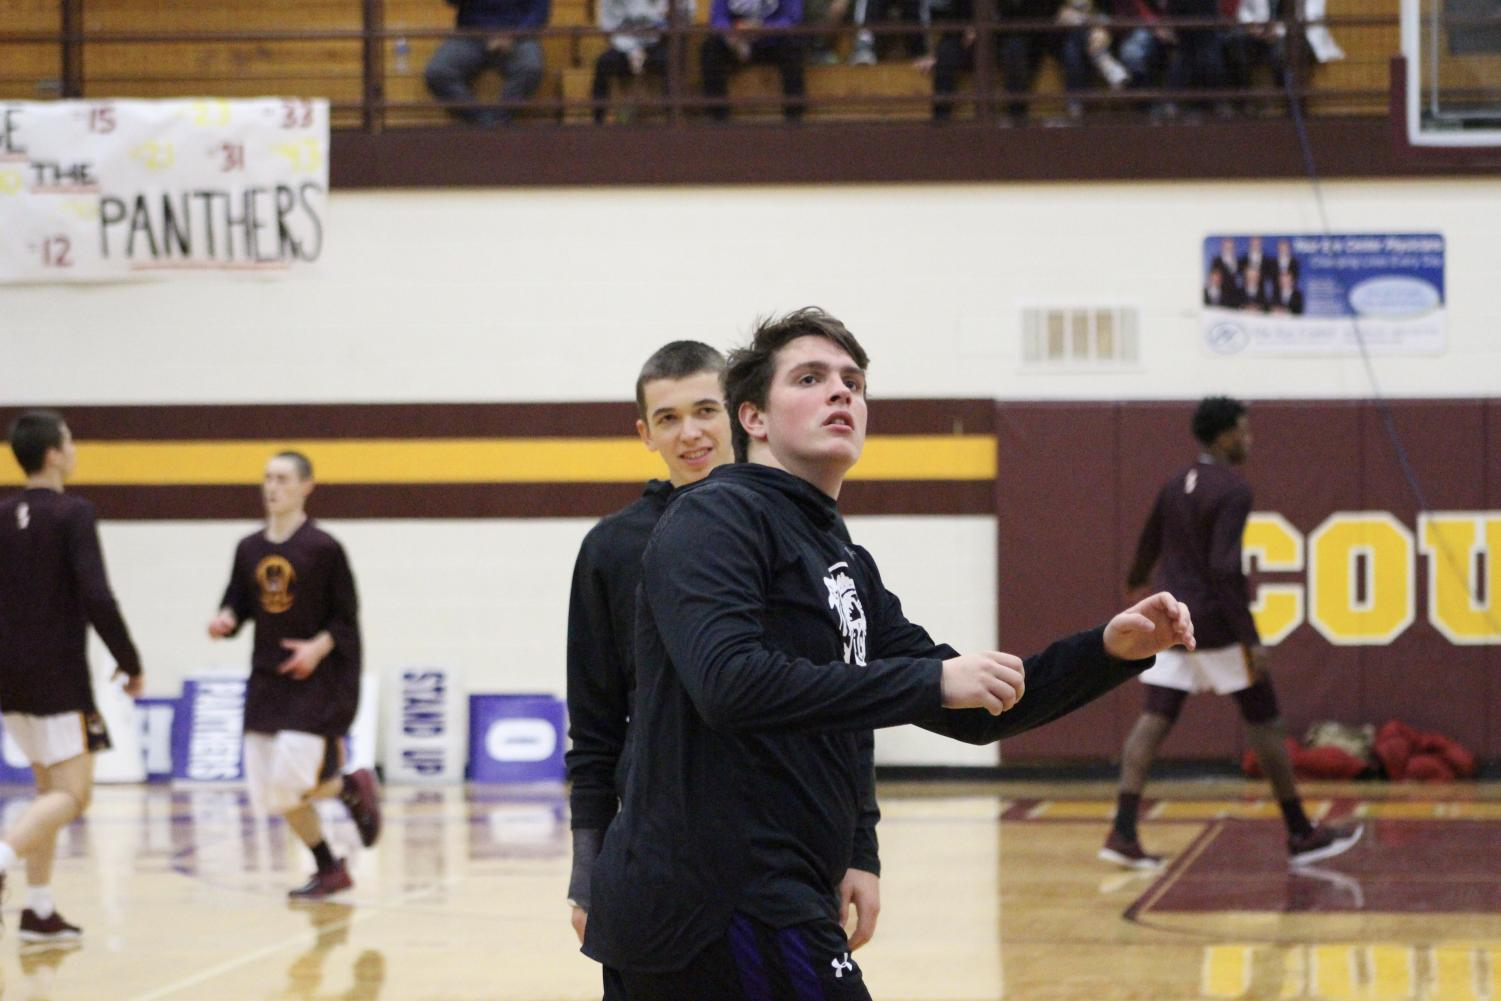 South's Bruce Furr (43) warms up his shot